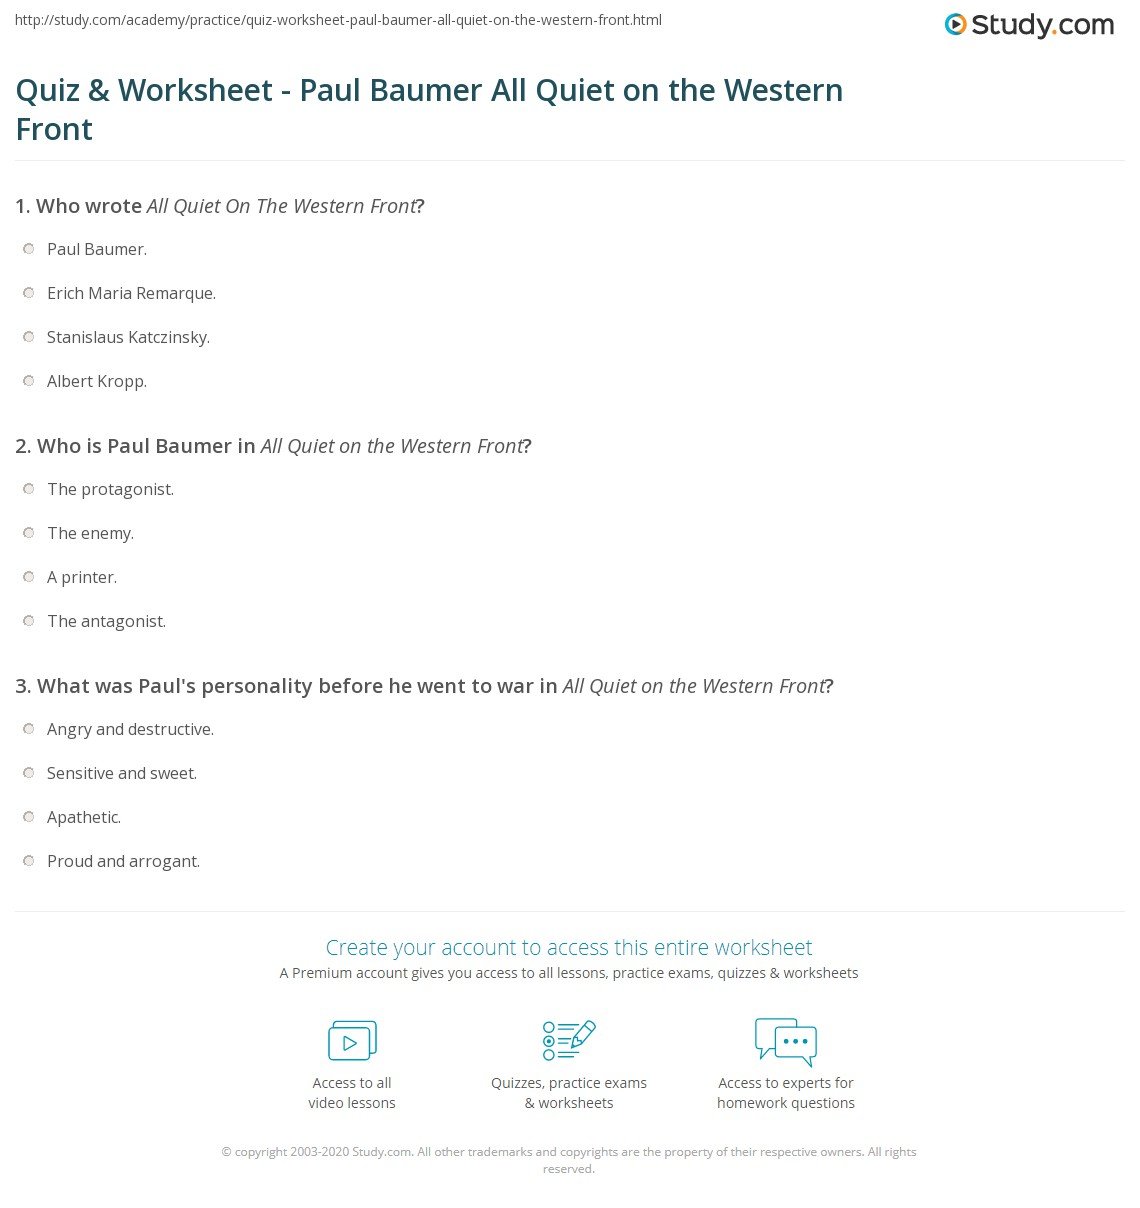 a study of paul baumer in all quiet on the western front essay Literature: all quiet on the western front term papers, essays, research   during his time in the war, the main character, paul baumer, changes from an.